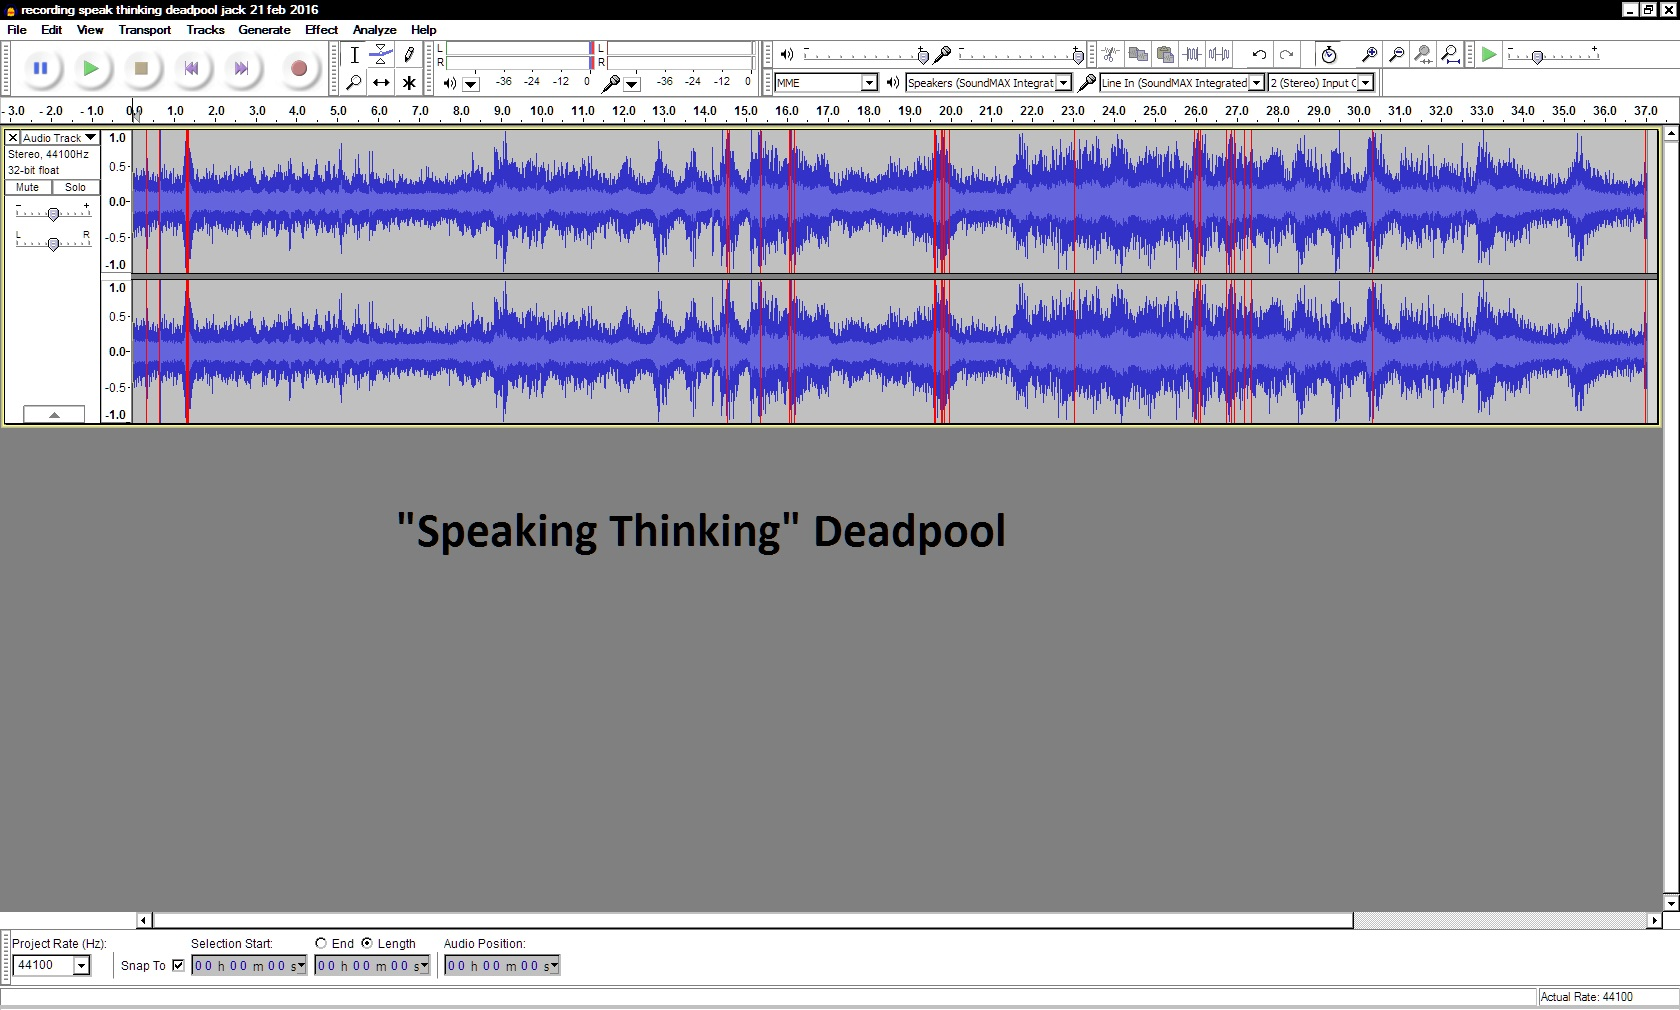 recording speak thinking deadpool jack 21 feb 2016